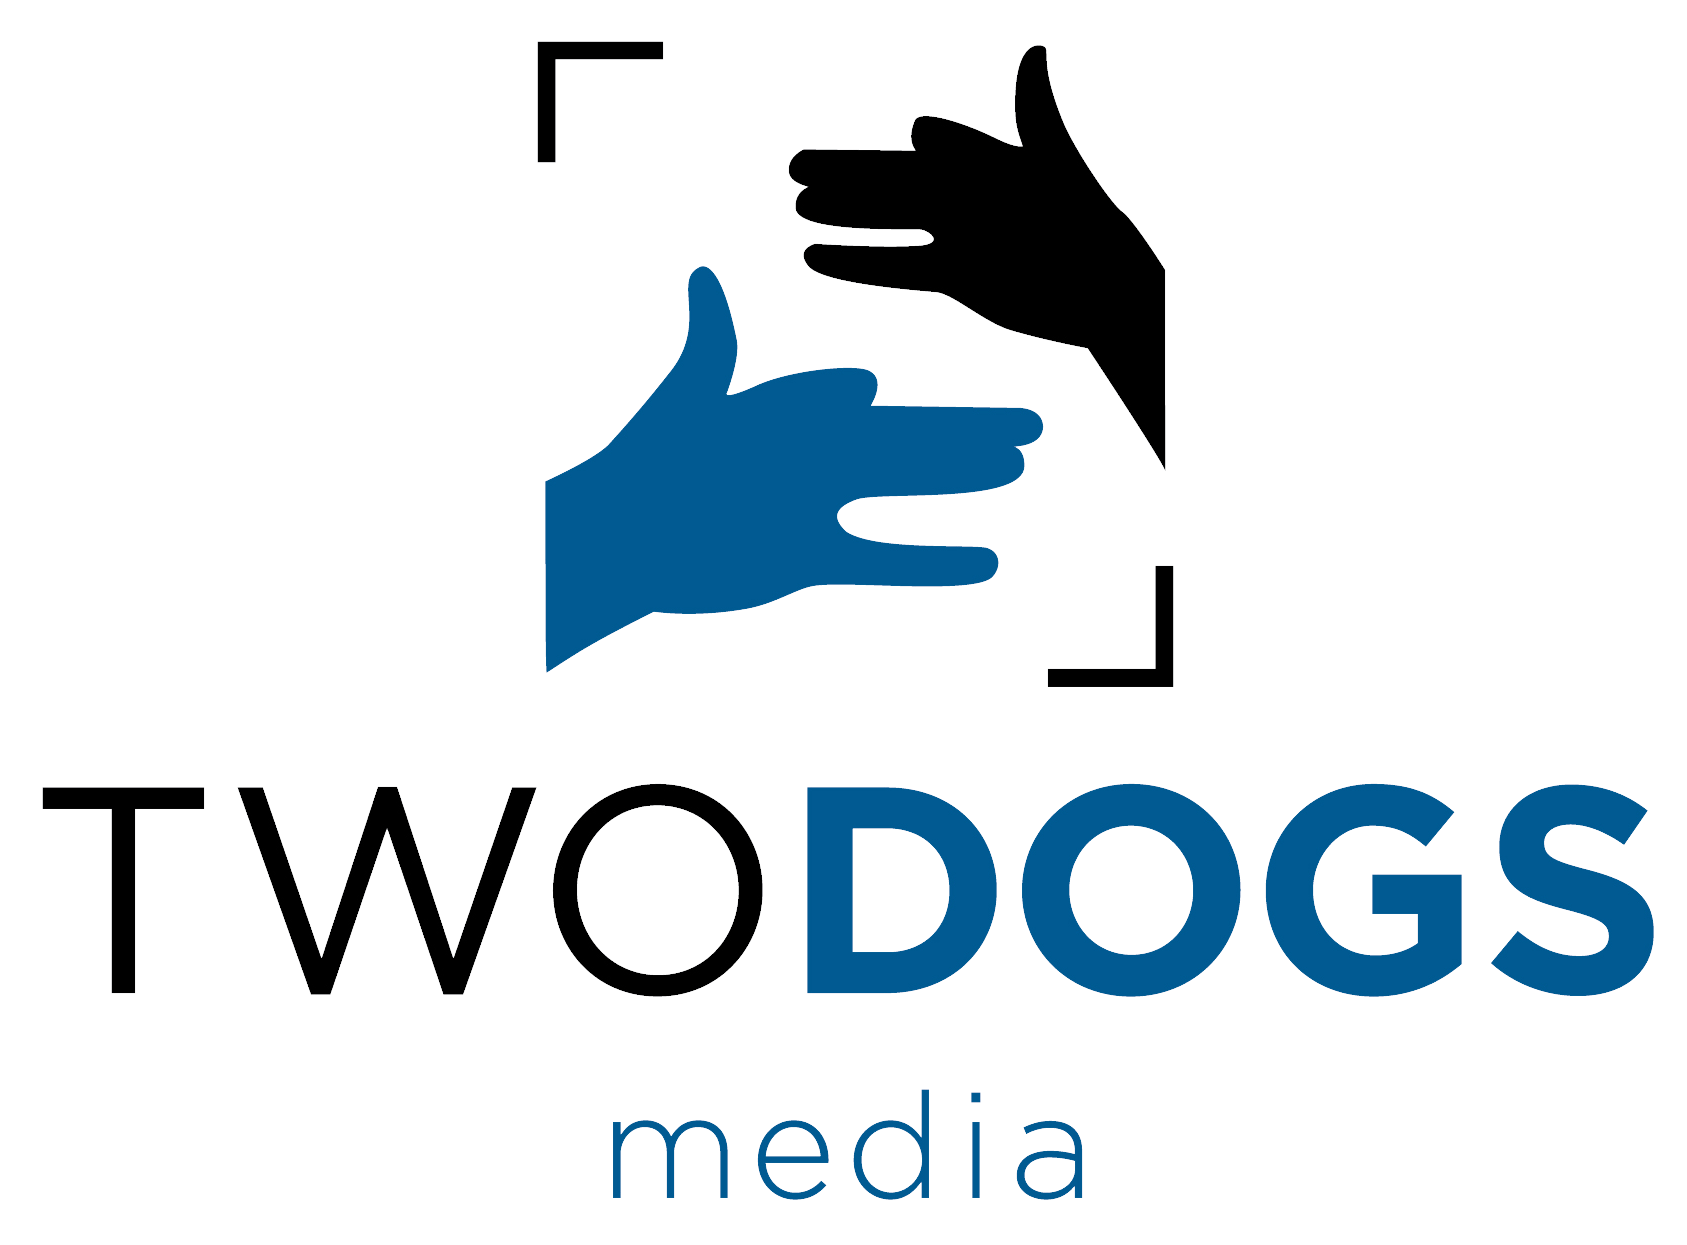 Two Dogs Media